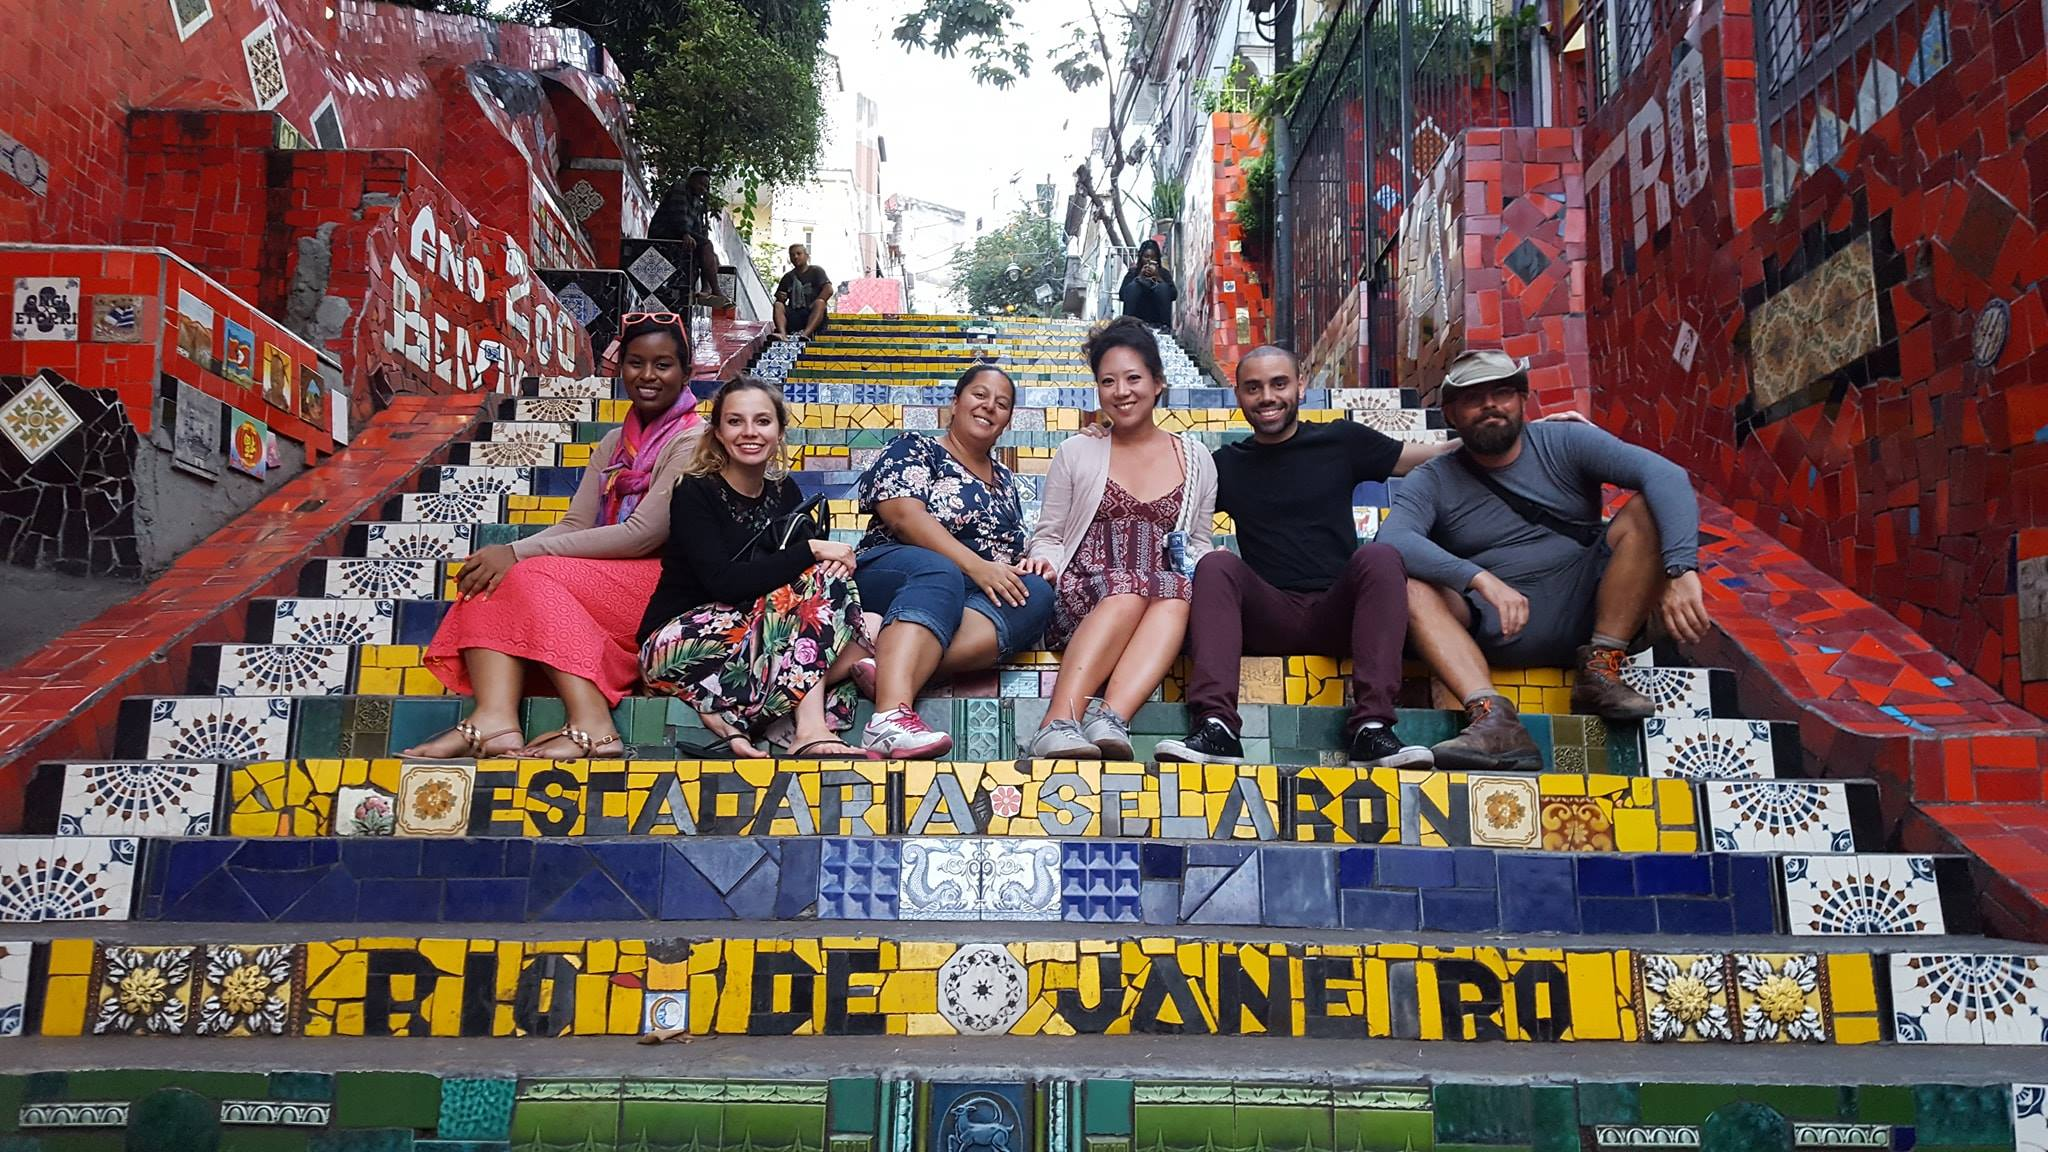 So many colors at Escadaria Selarón. Students at Selarón Stairs